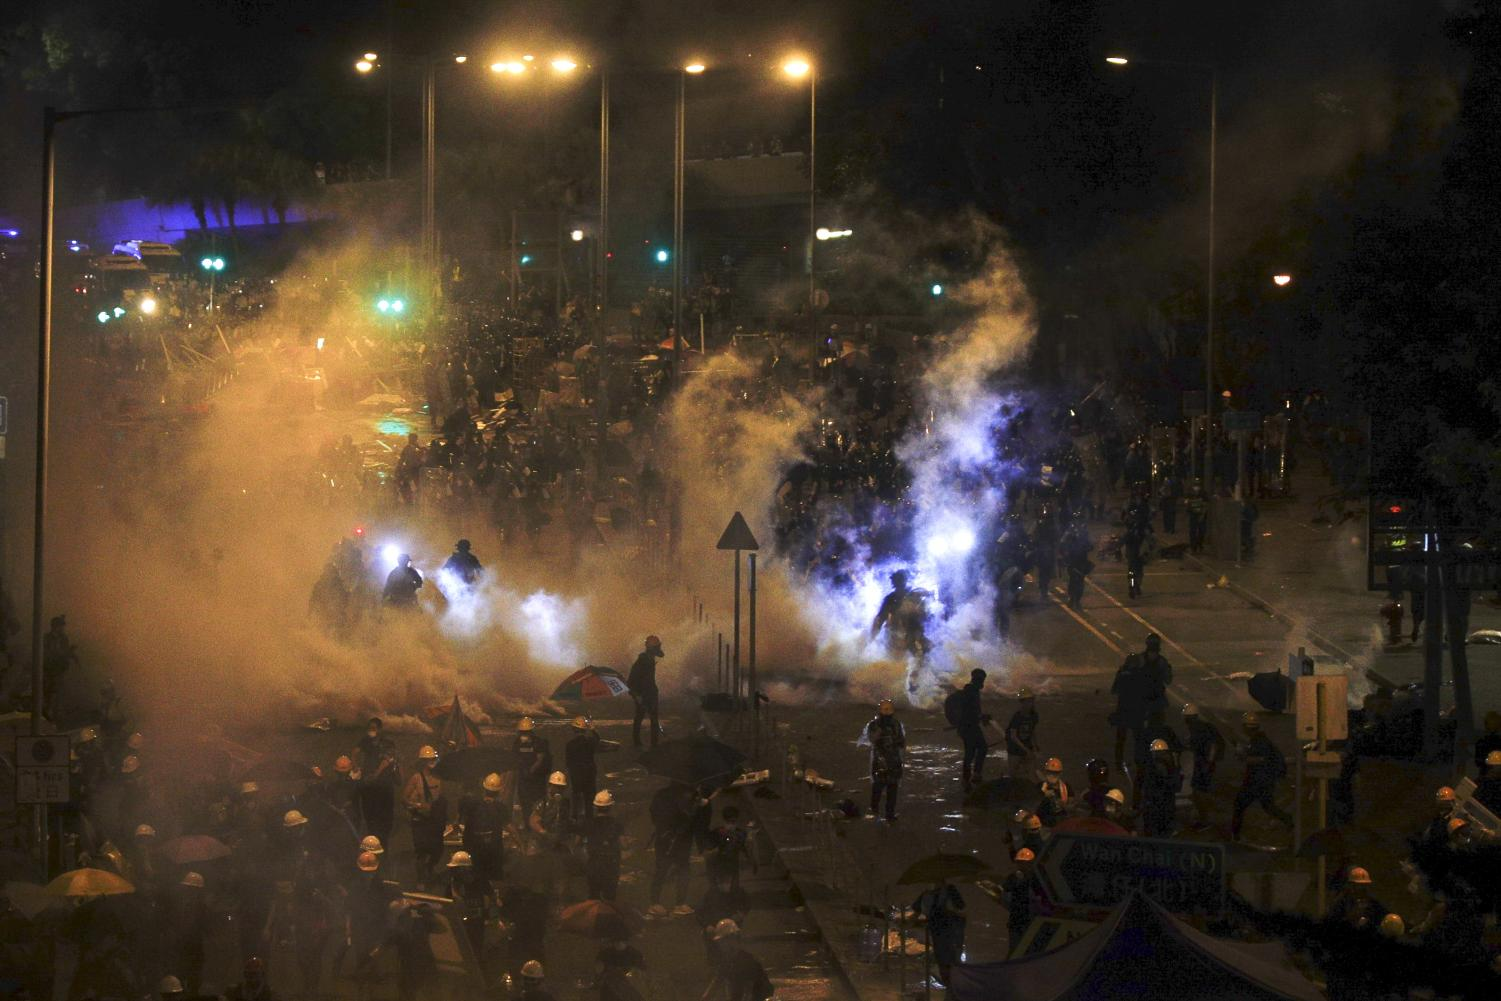 Hong Kong police clear protesters from legislature building - The